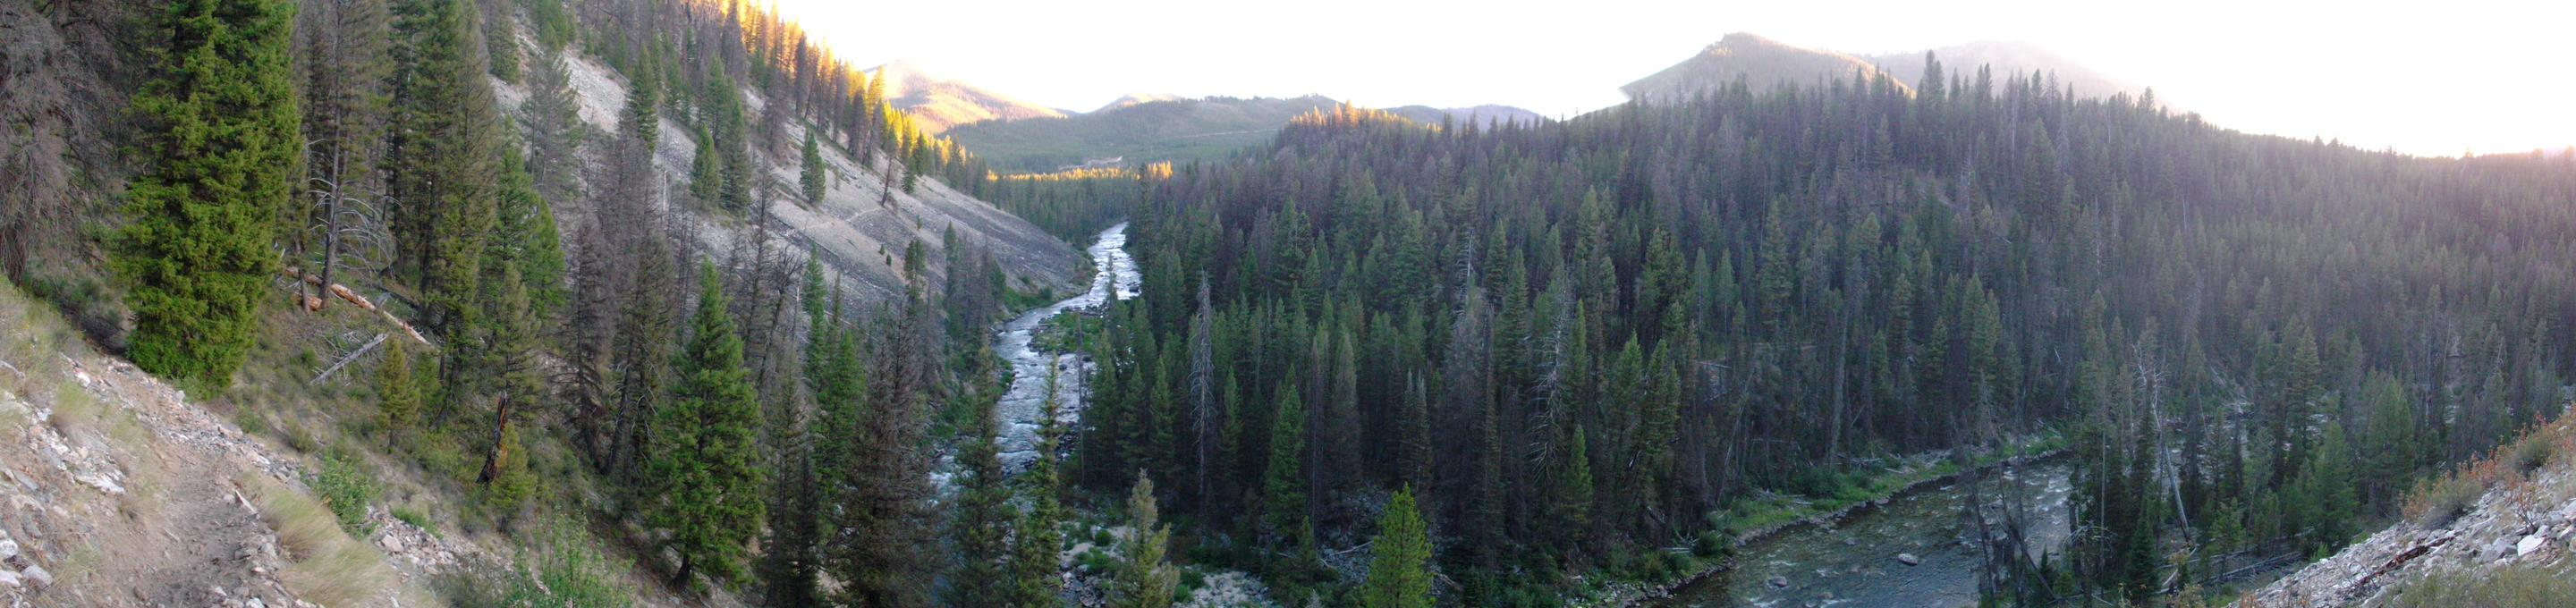 Middle Fork of the Salmon River, taken near Boundary Creek